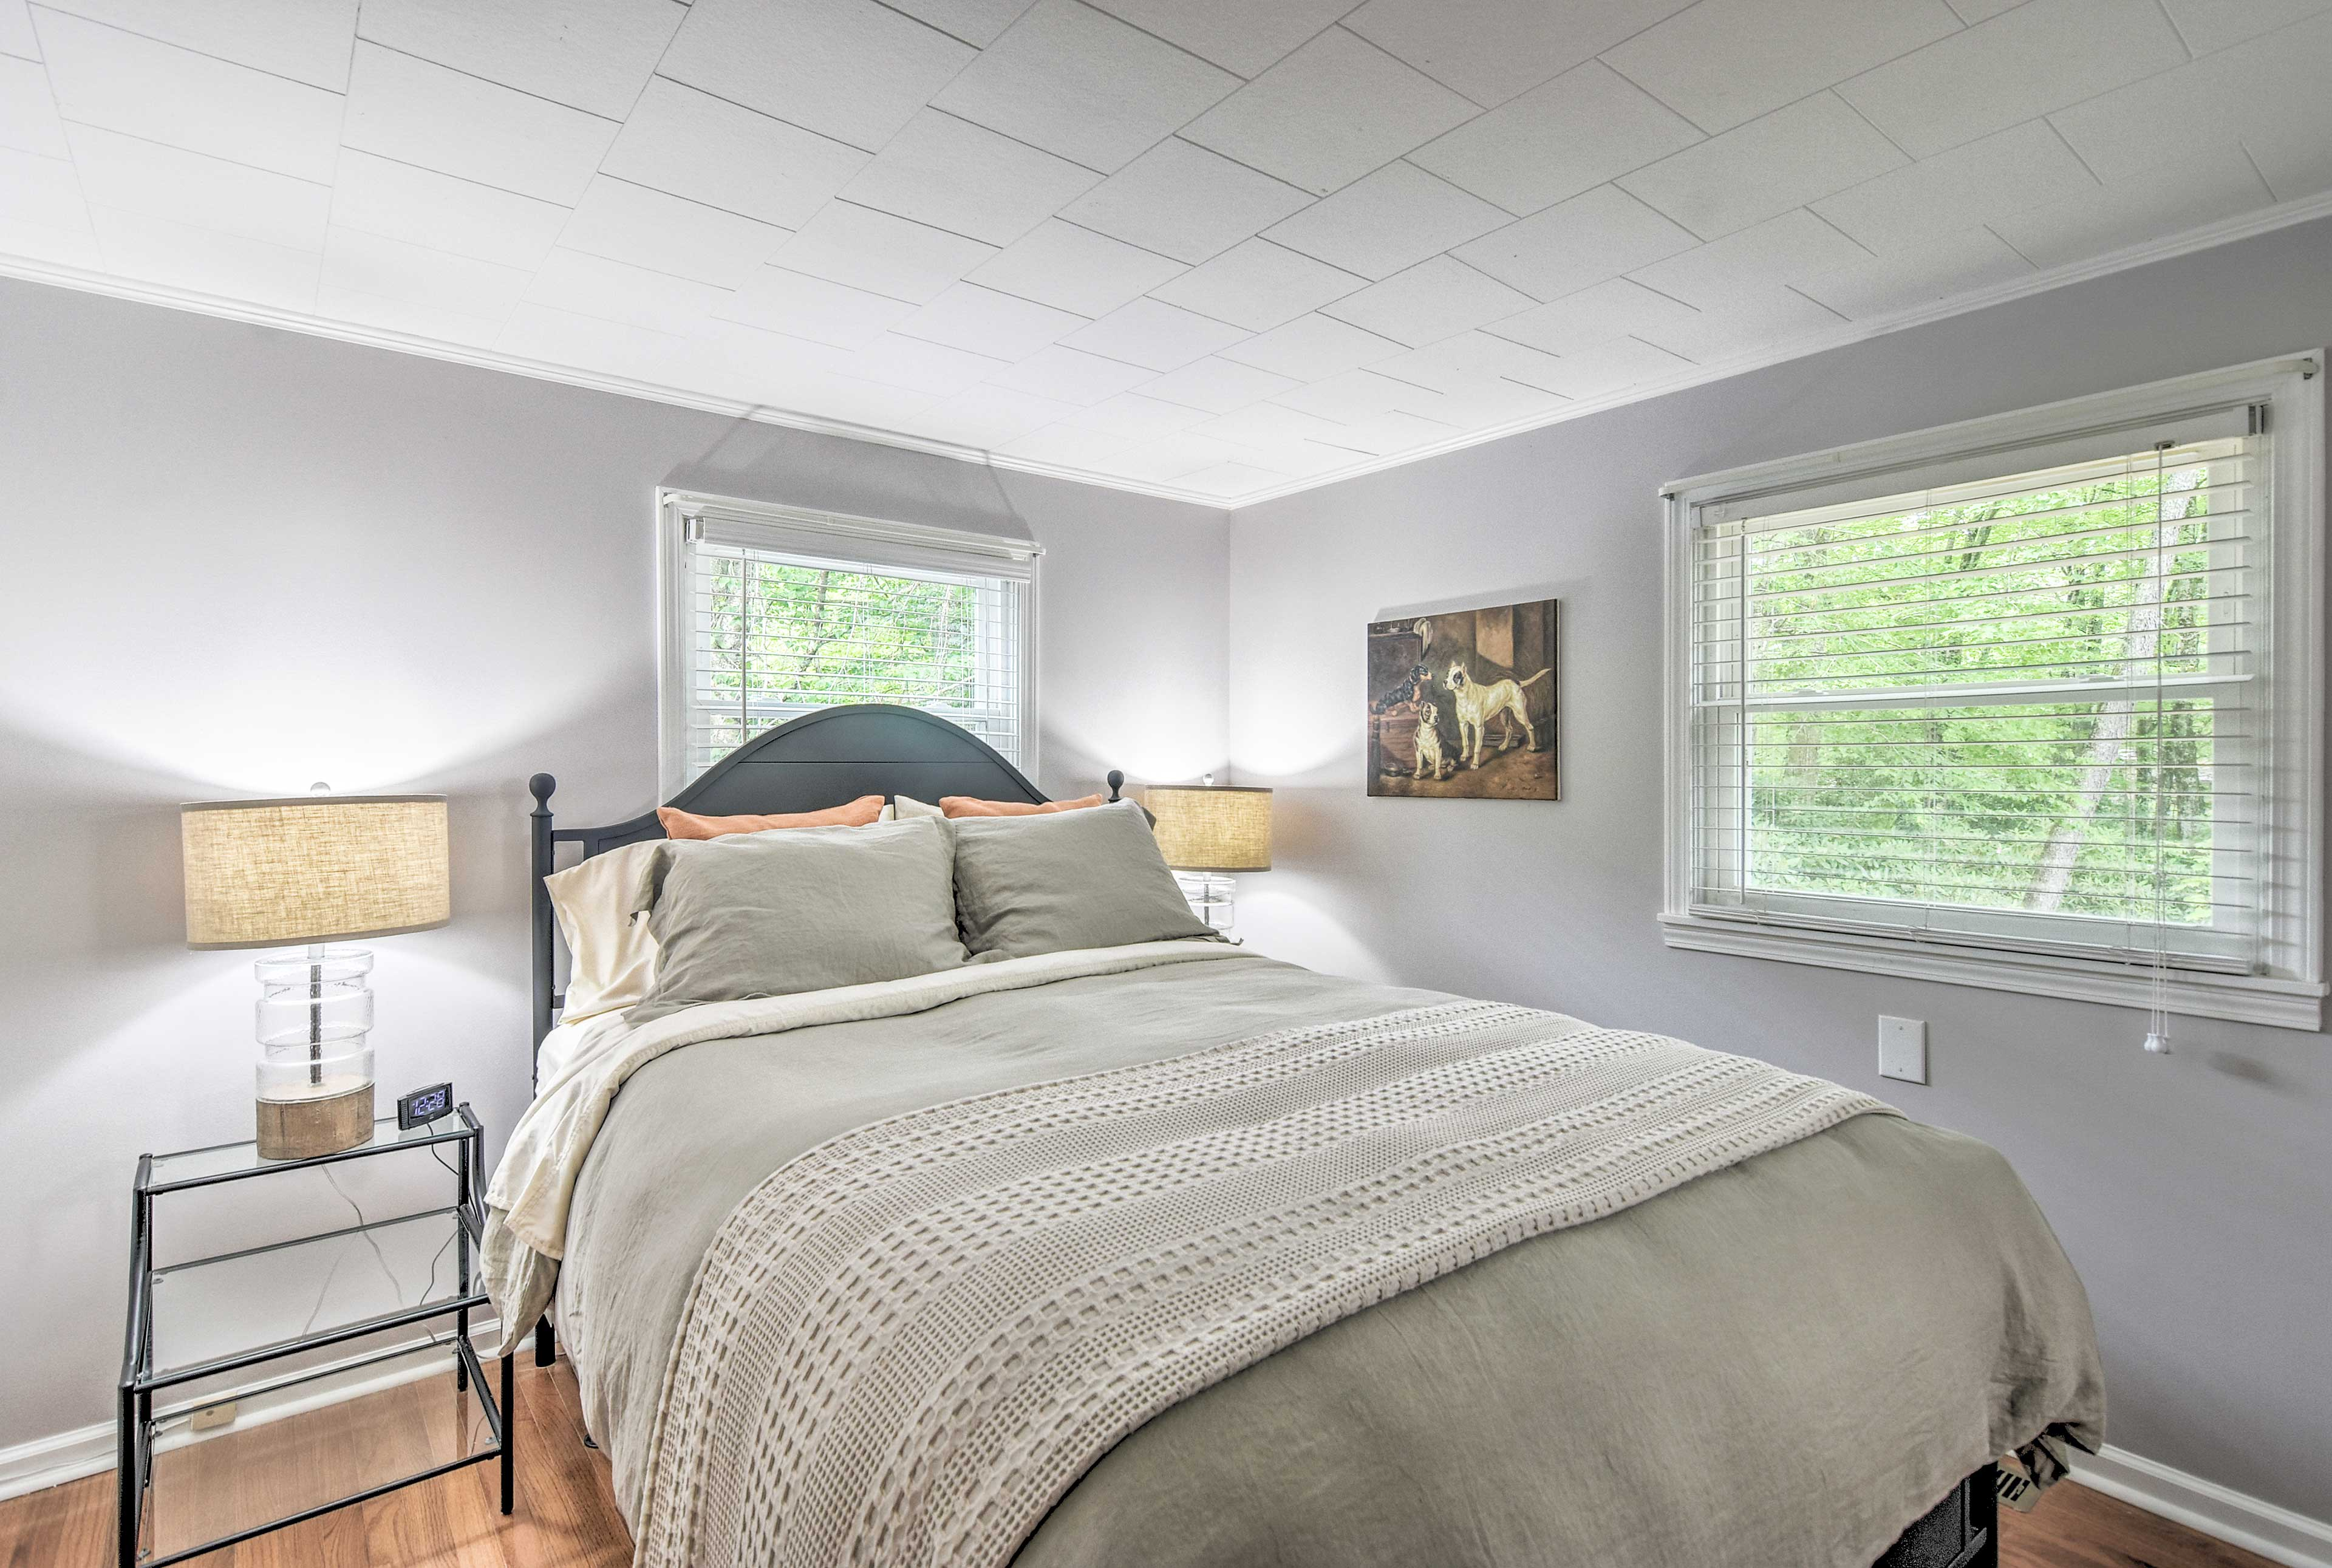 The master bedroom also houses a queen bed.